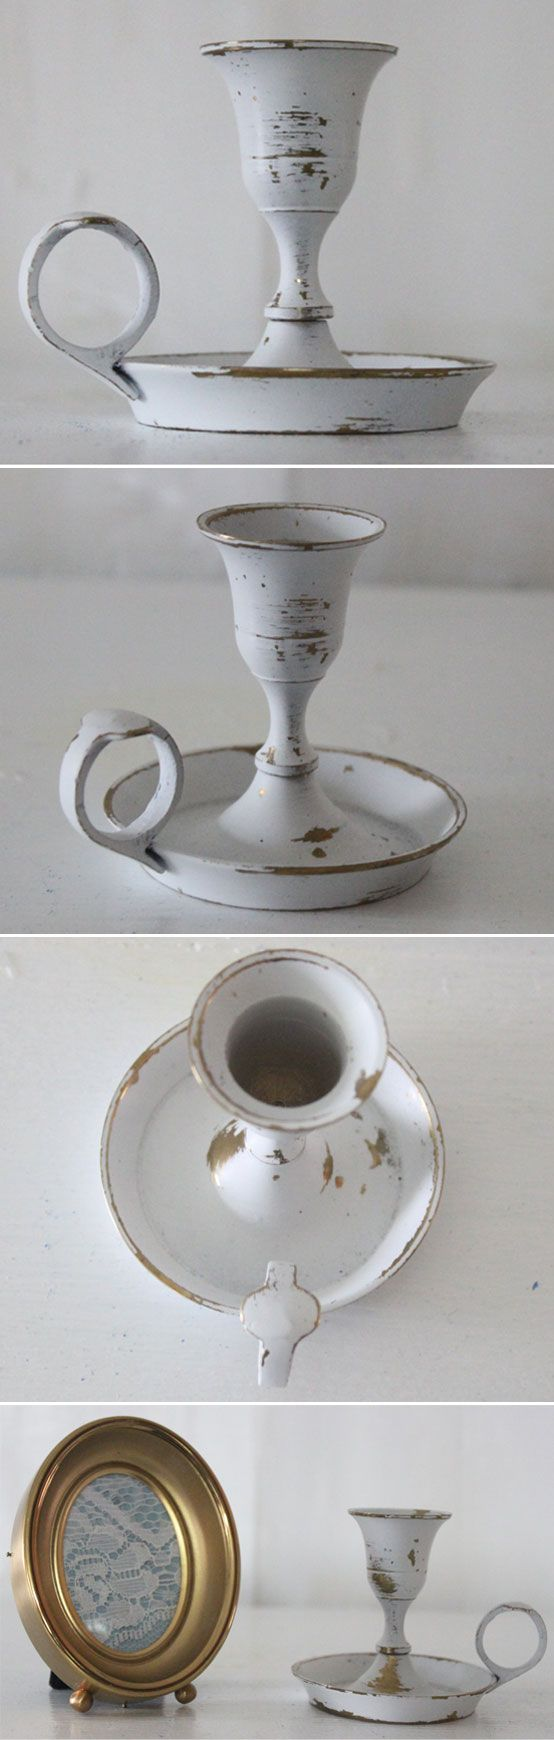 METAL   DISTRESSED BRASS :: White painted & distressed brass finger candle holder (ClearwaterTrading on Etsy) :: For reference...